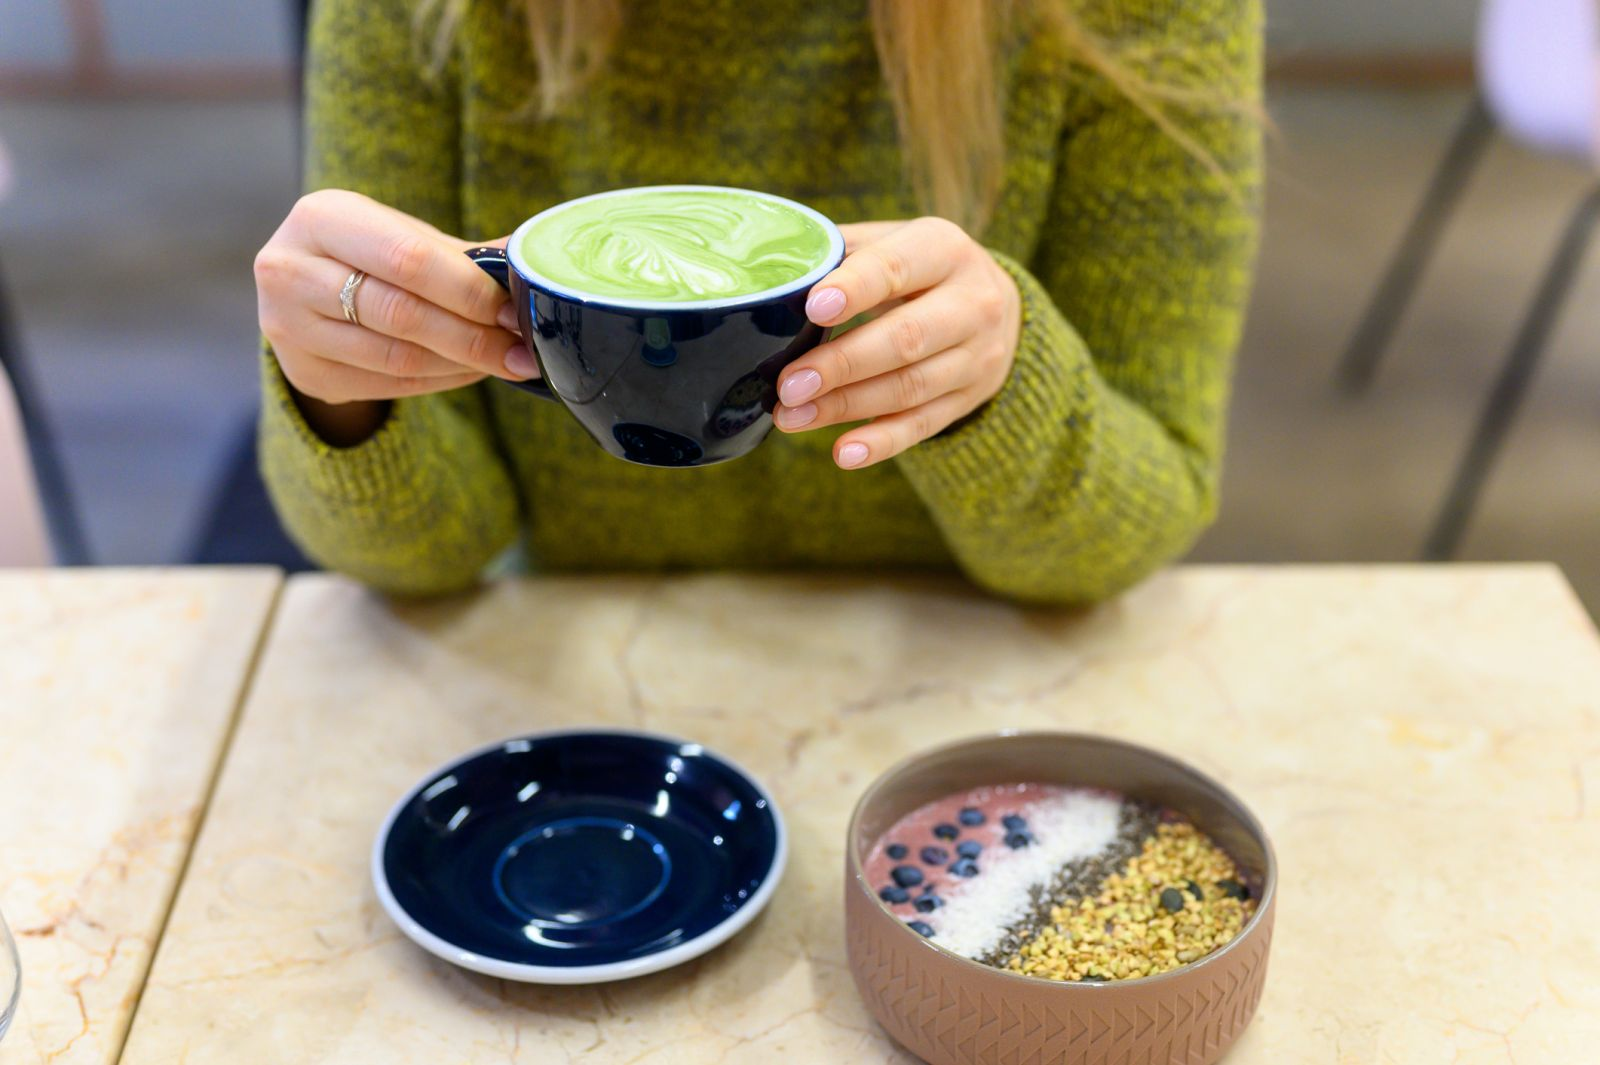 Person holding a Matcha latte